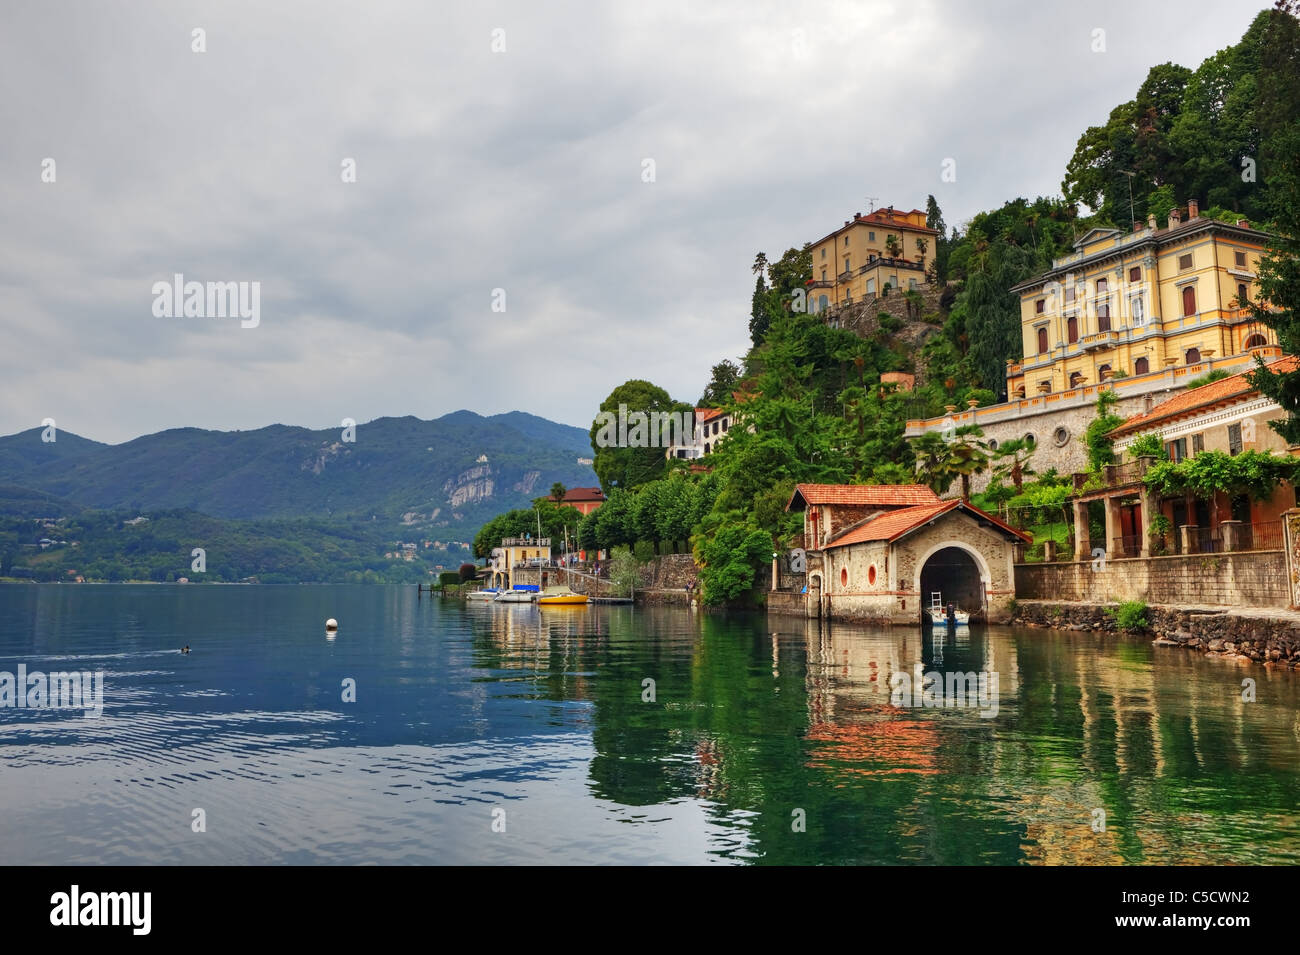 View of the Lago d'Orta and the city of Orta in Piedmont - Stock Image